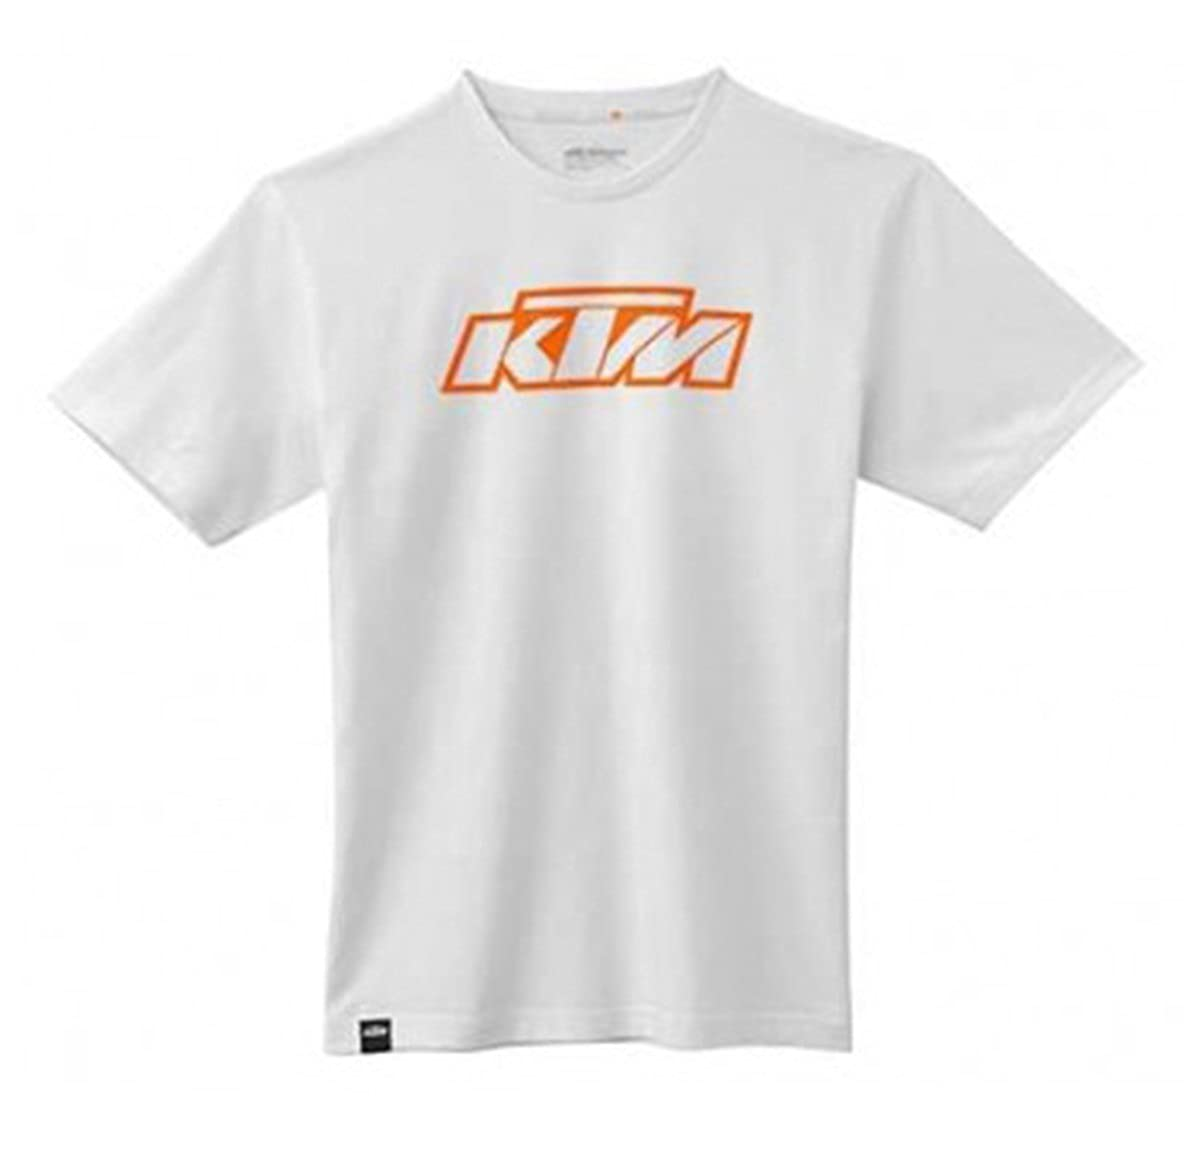 Camiseta oficial KTM naranja, color blanco azul small: Amazon.es ...